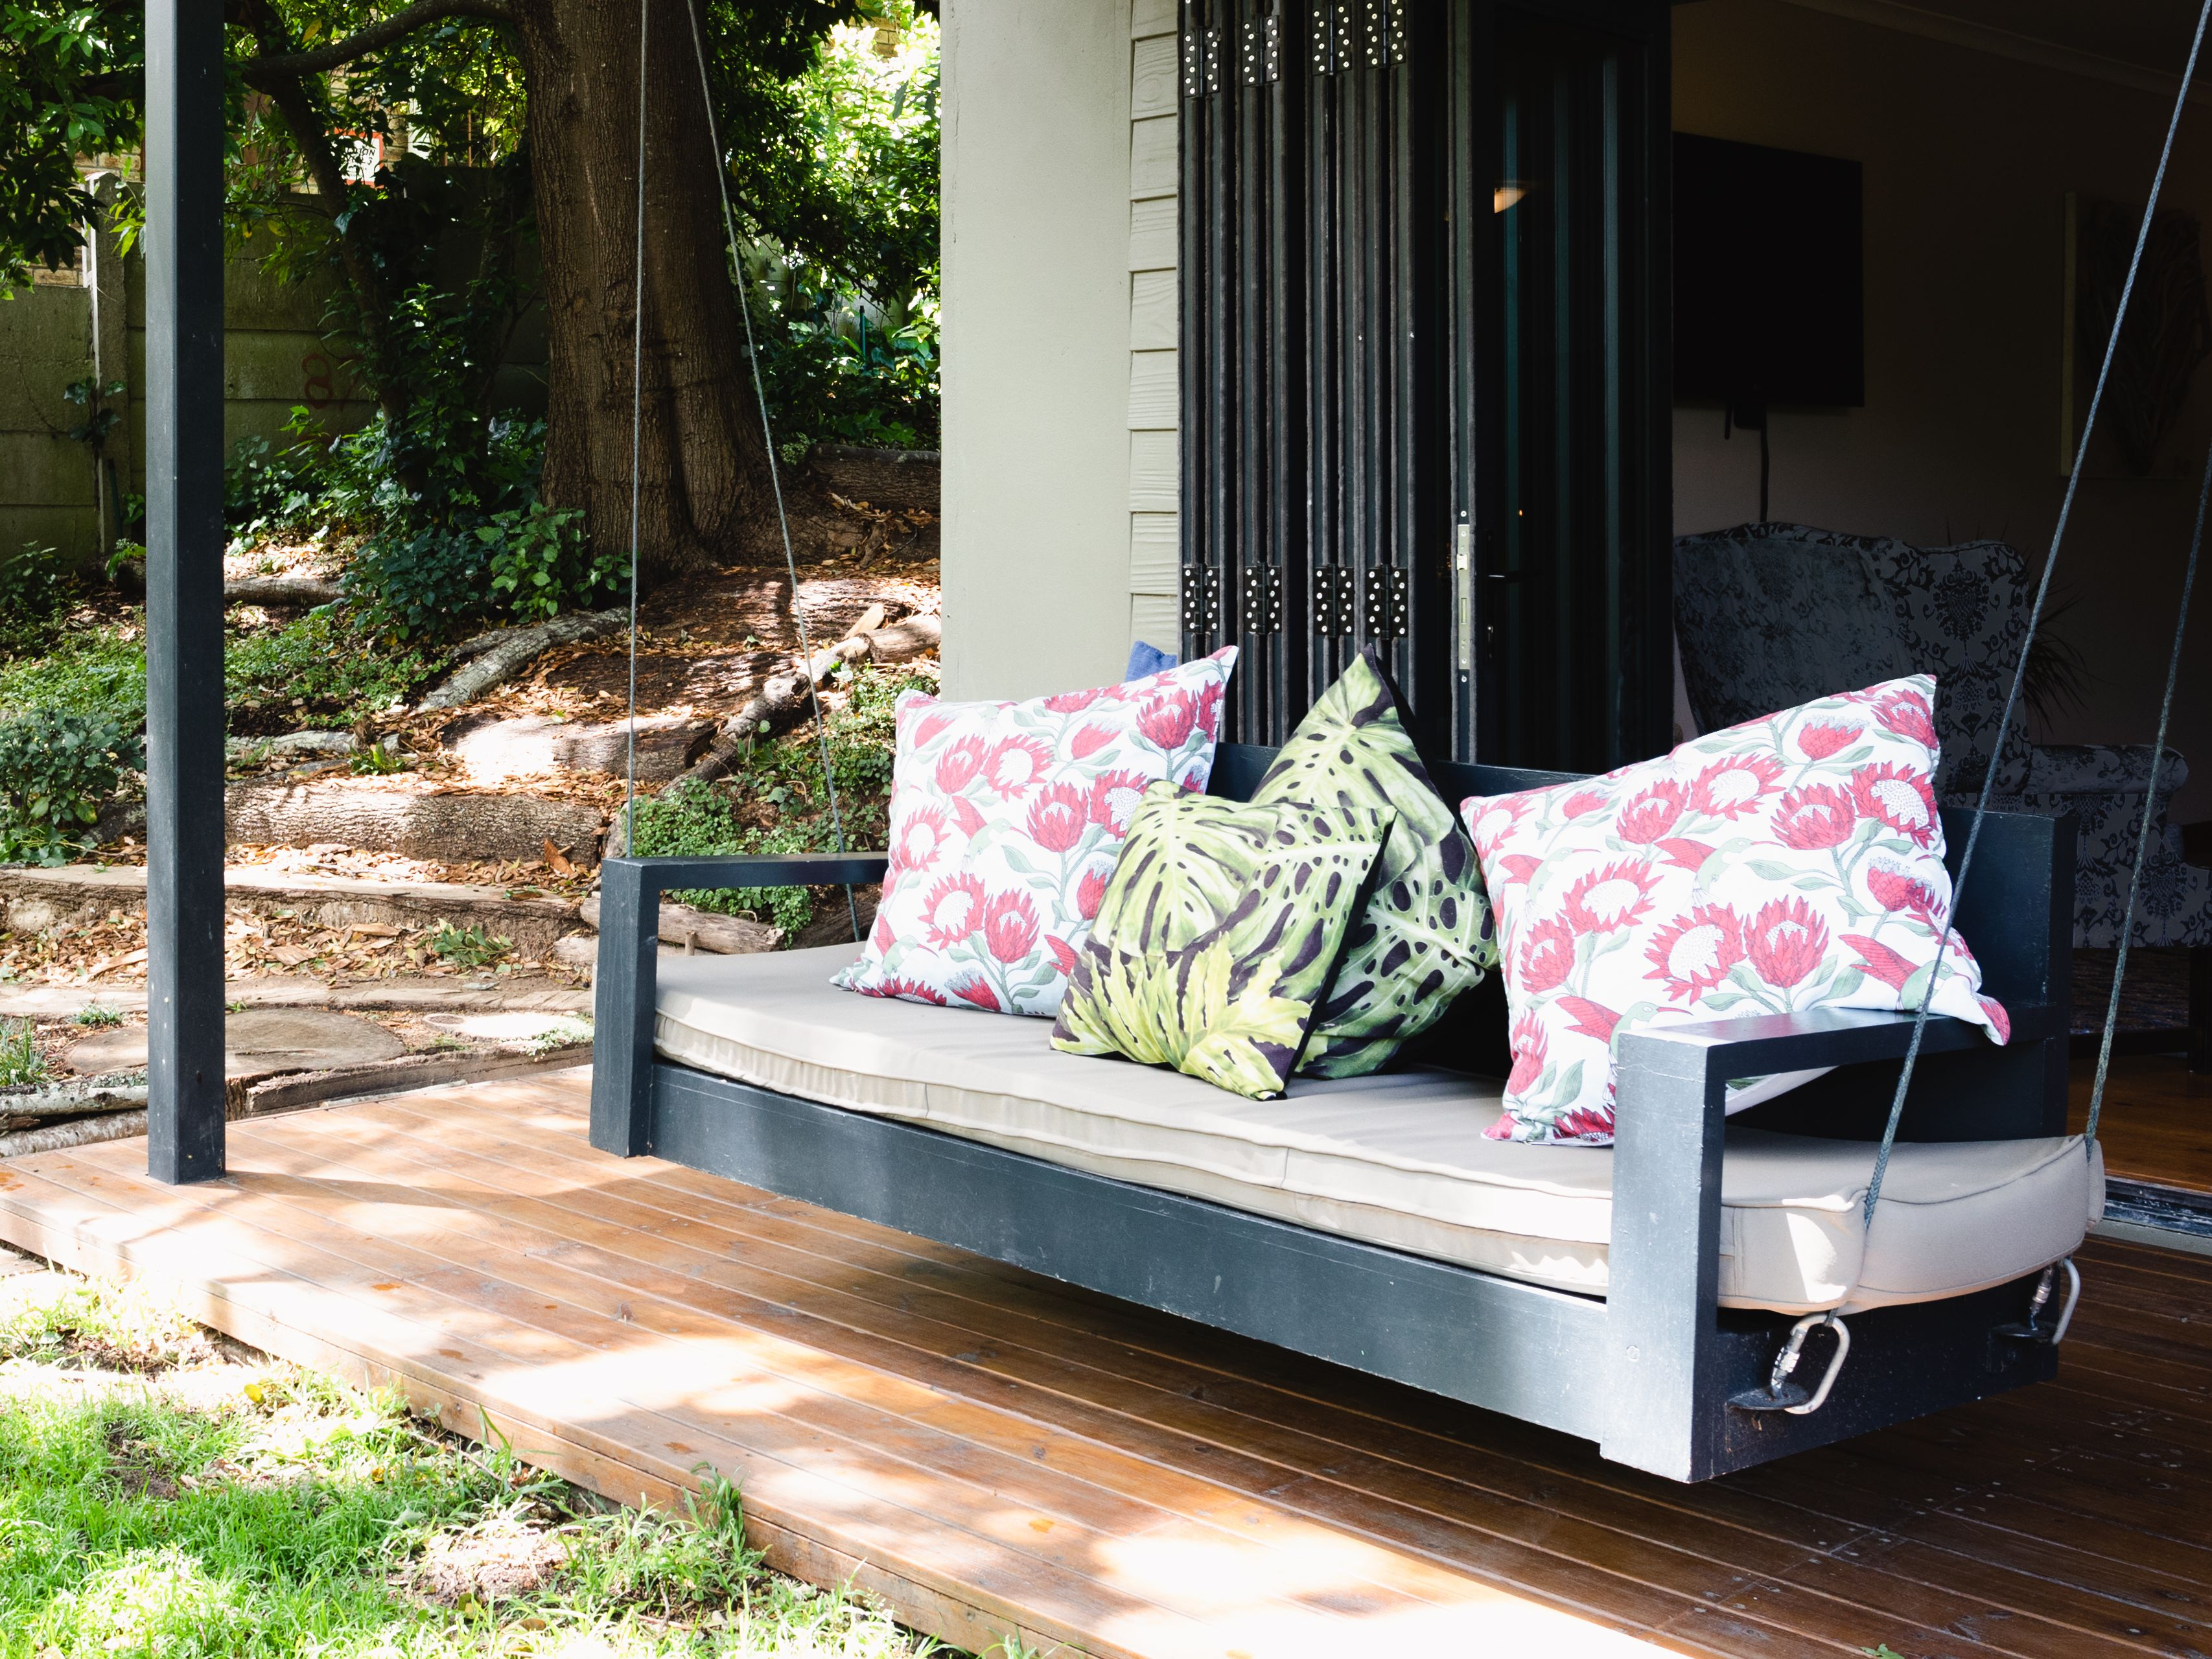 12 Free Porch Swing Plans To Build At Home, Outdoor Swing Bench With Stand